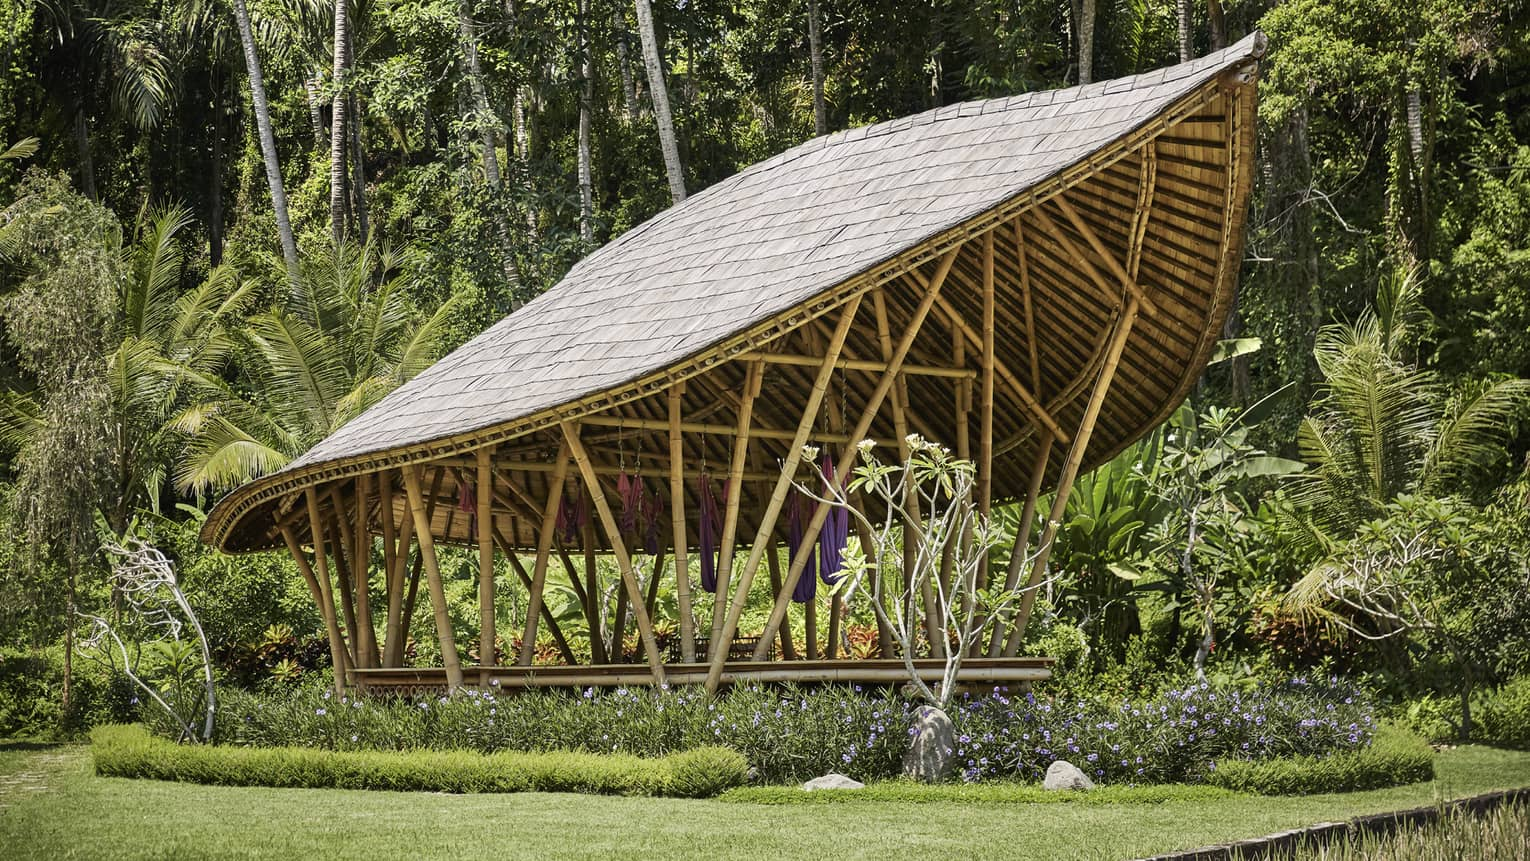 Dharma Shanti Bale leaf-shaped pavilion in tropical garden